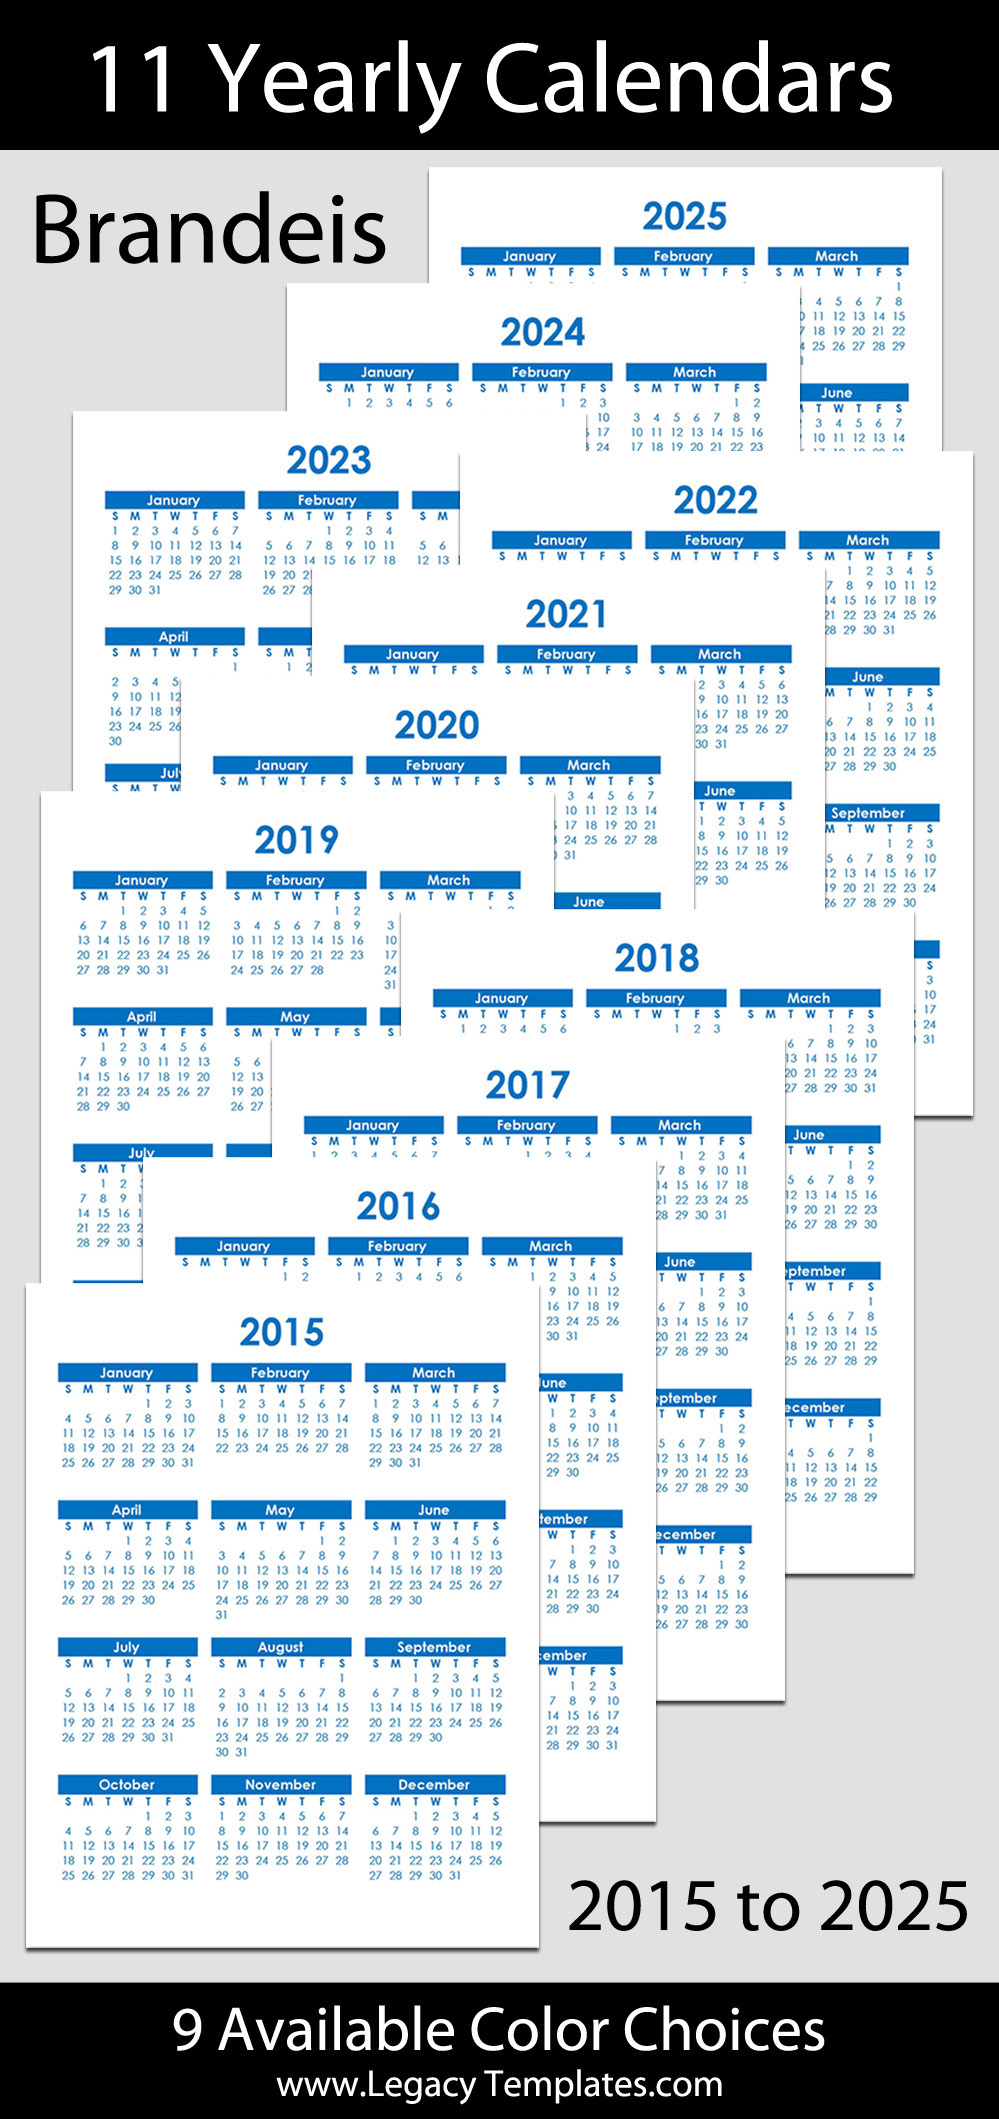 calendars for 2019 and 2015